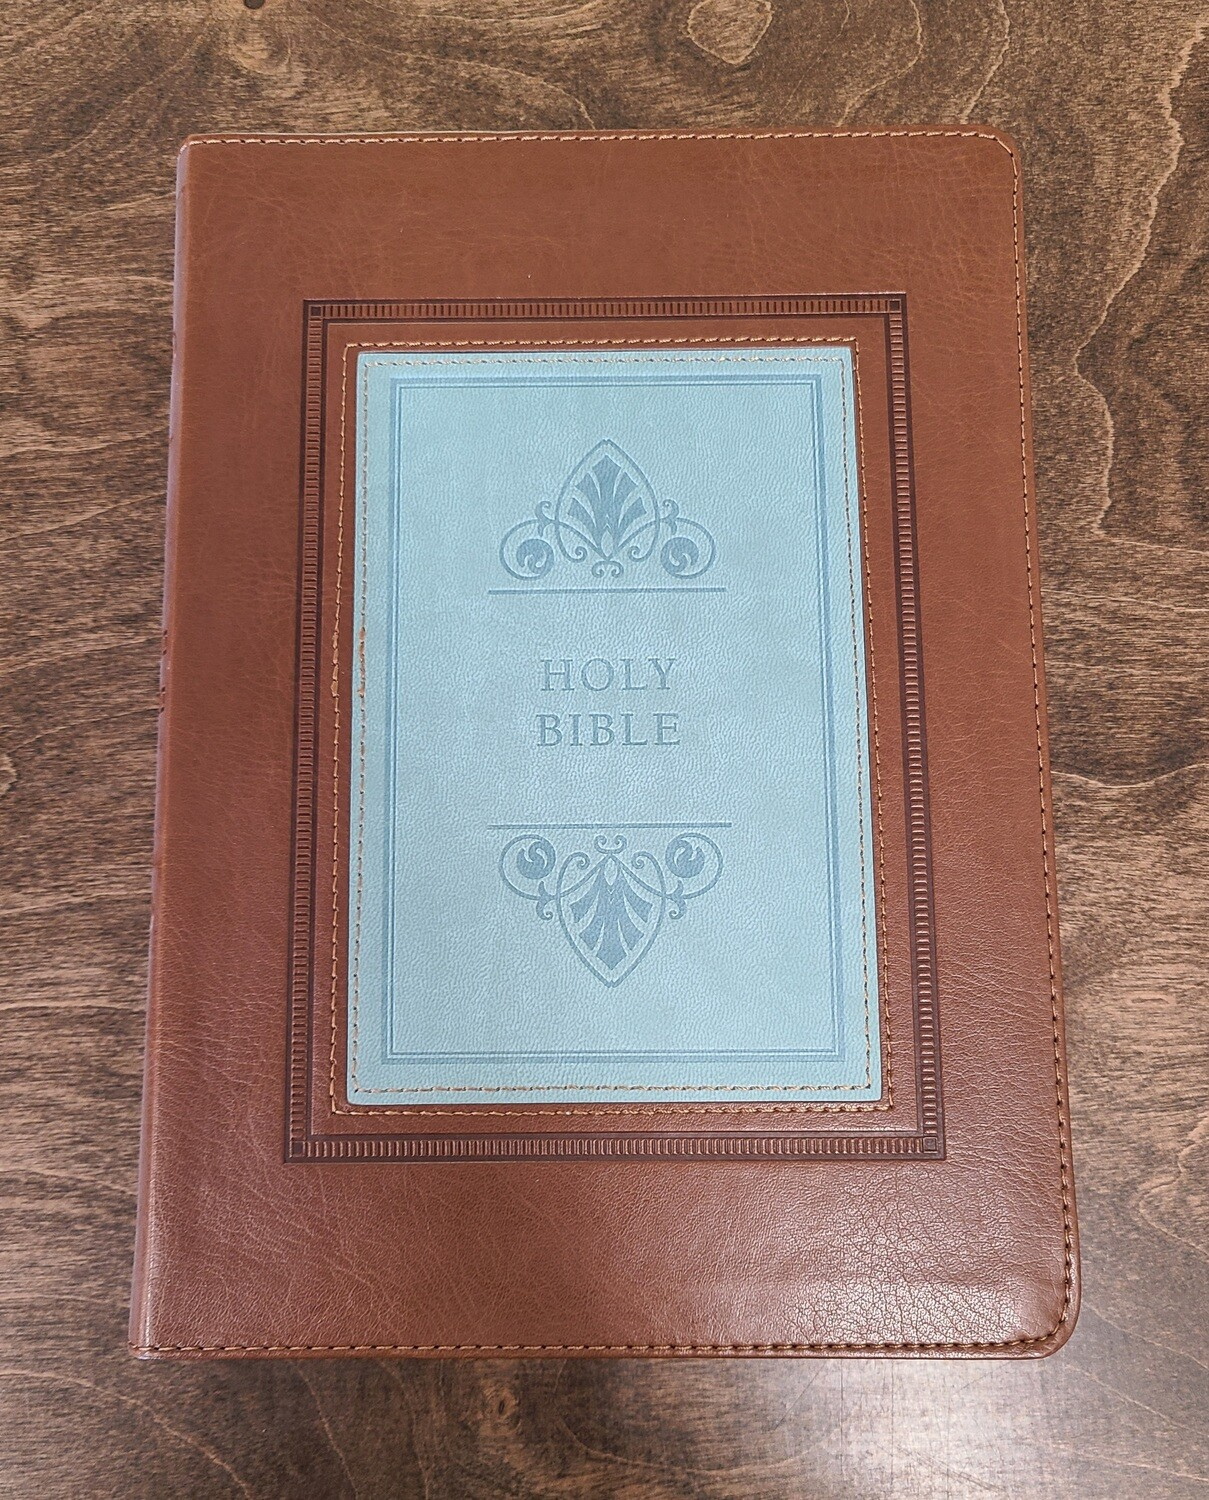 KJV Study Bible - Large Print Thumb-Indexed Edition - Brown/Teal Leather